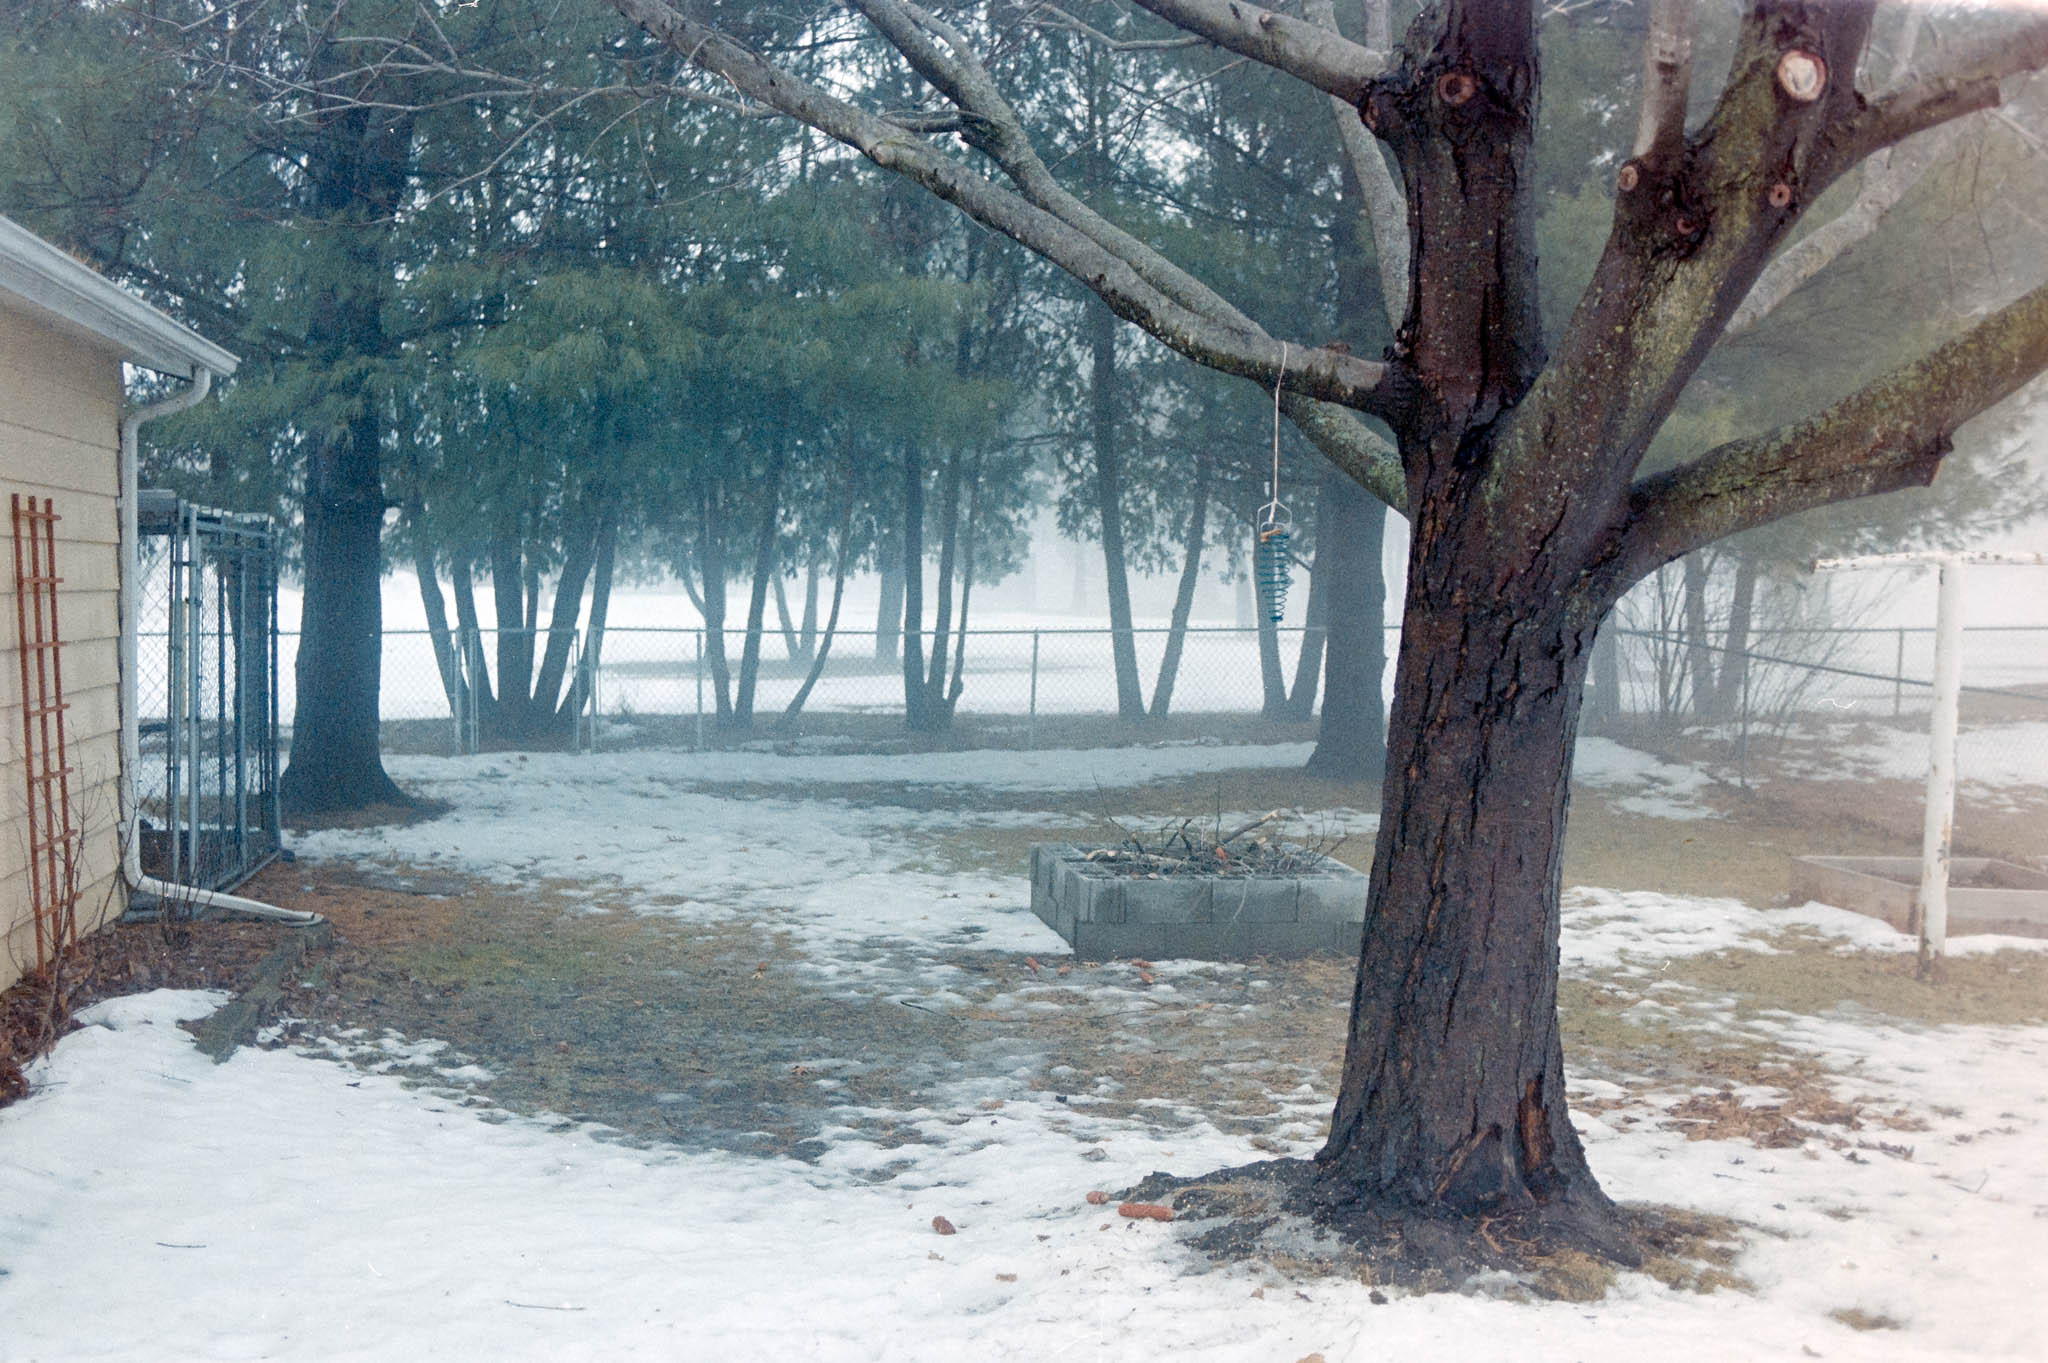 Our backyard in the fog and snow. Camera: Nikon N2020 with Fujifilm Superia 400